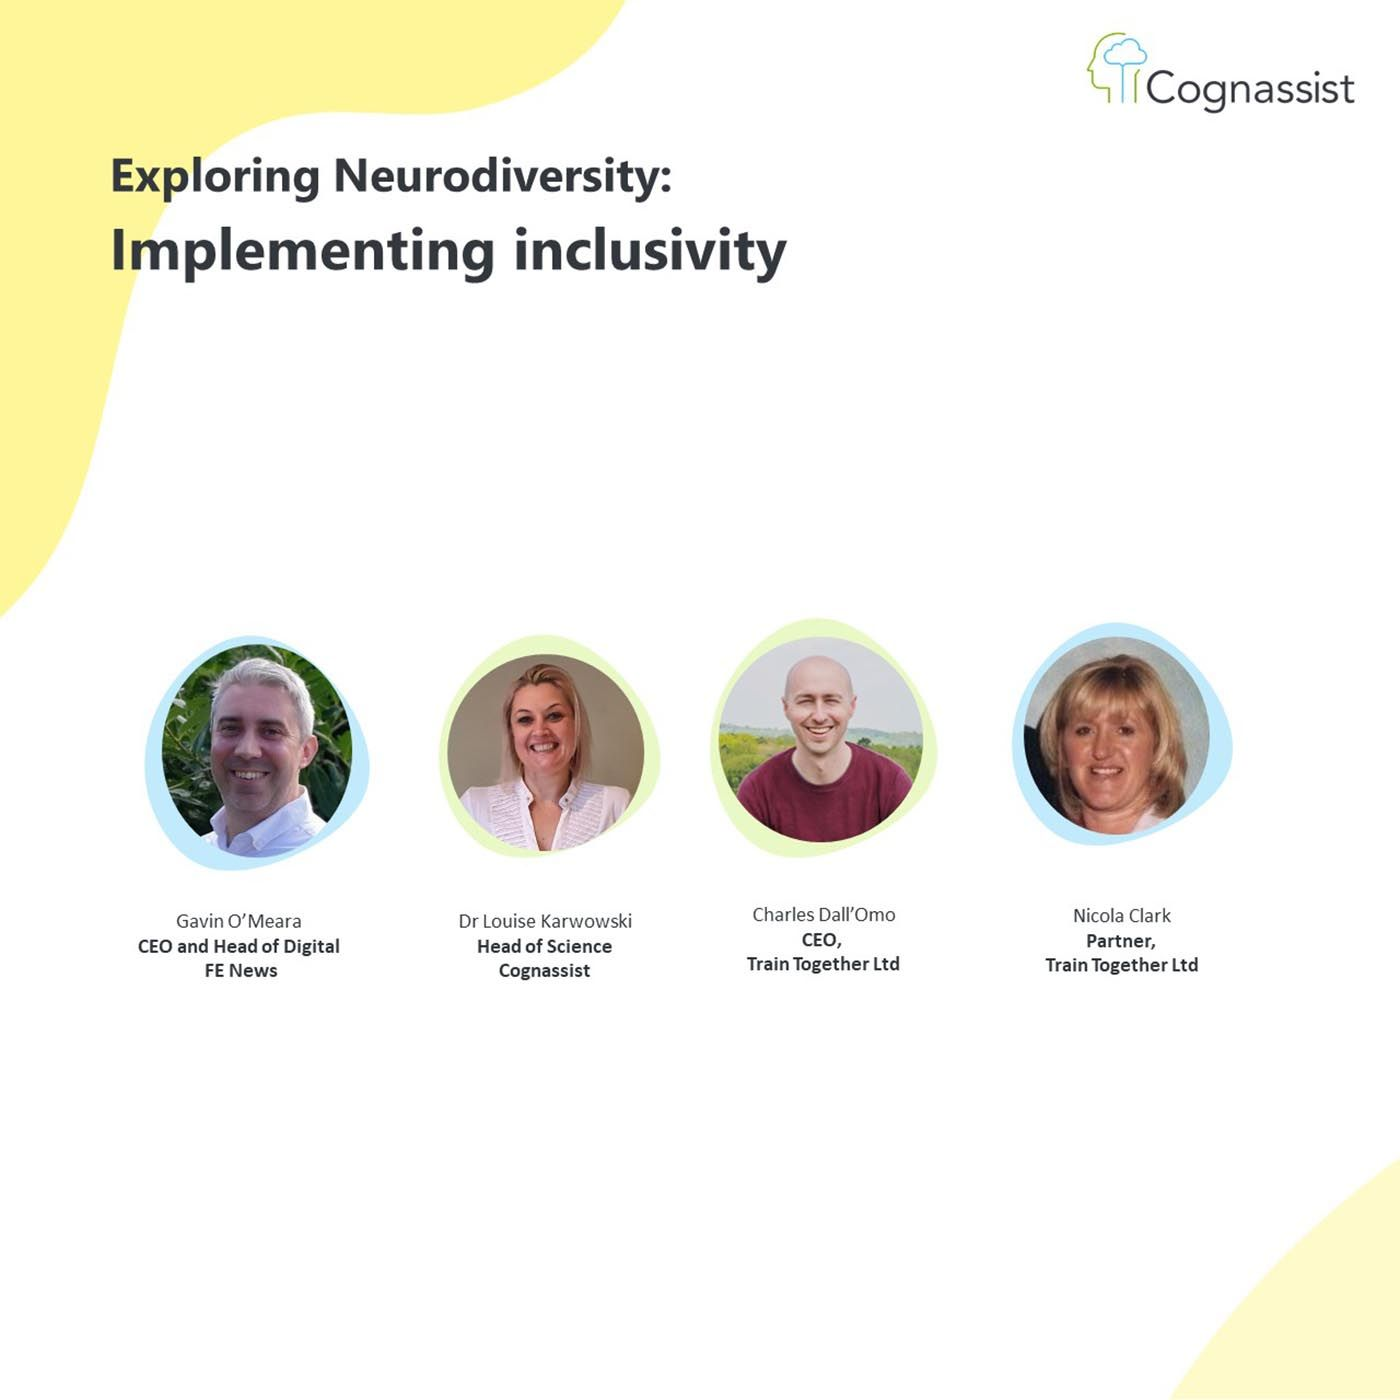 Exploring Neurodiversity - Implementing inclusivity to support Neurodiverse Learners